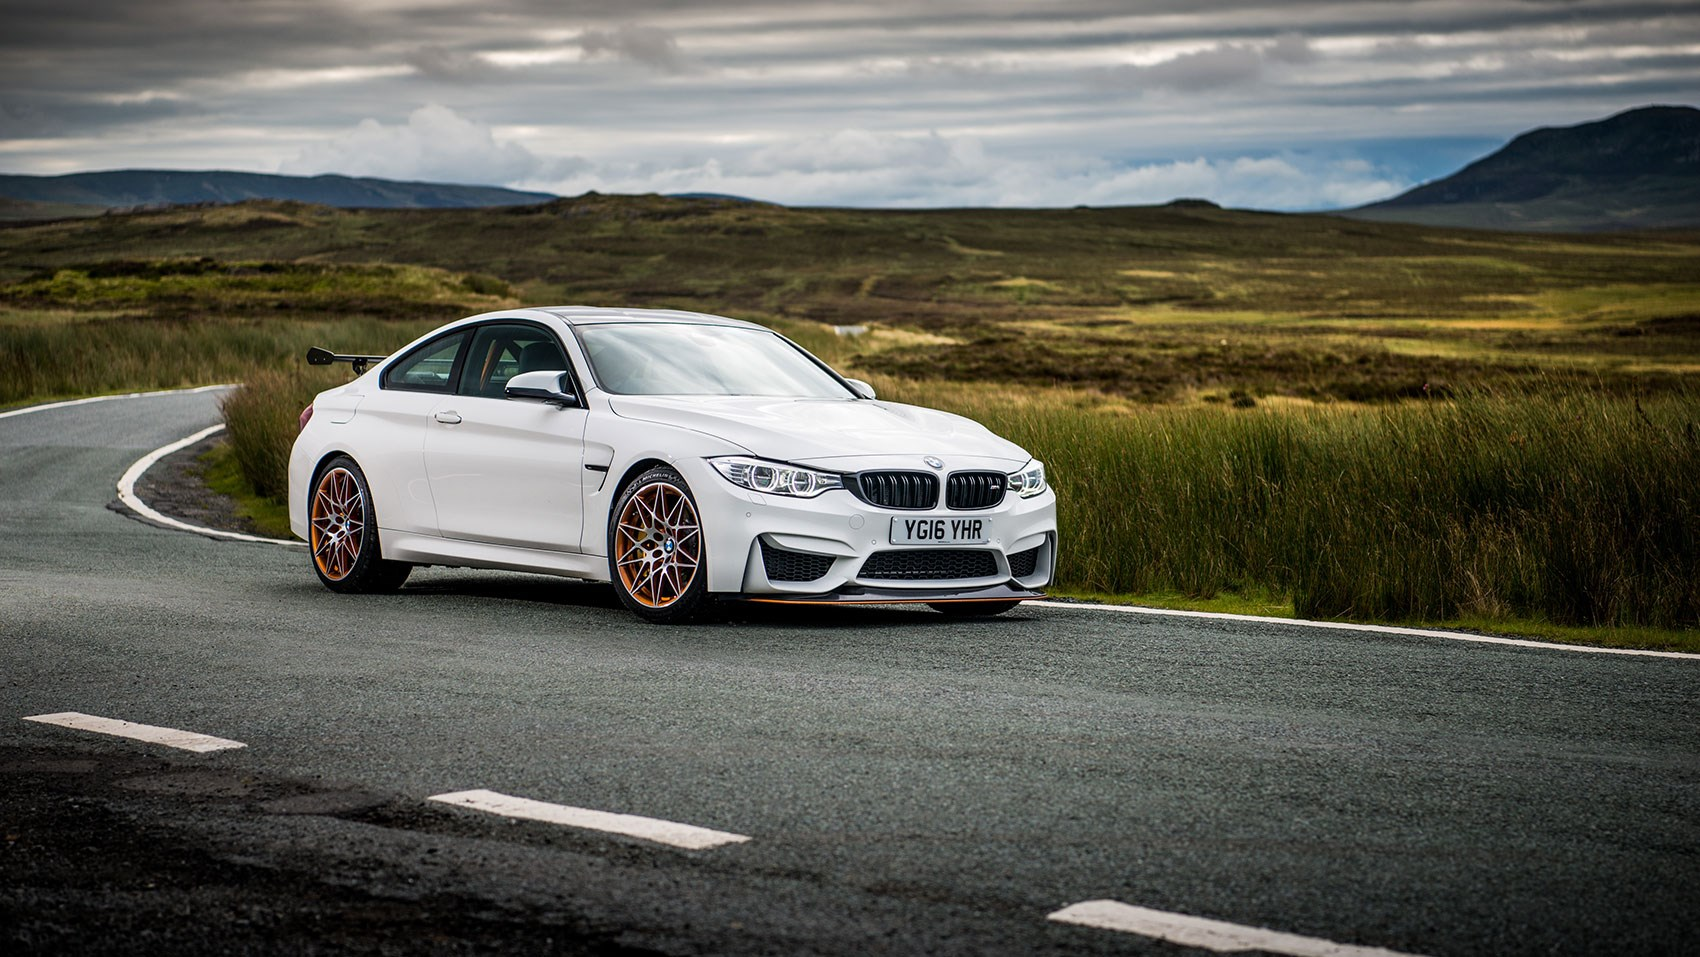 BMW M4 Gts For Sale >> BMW M4 GTS (2017) review | CAR Magazine